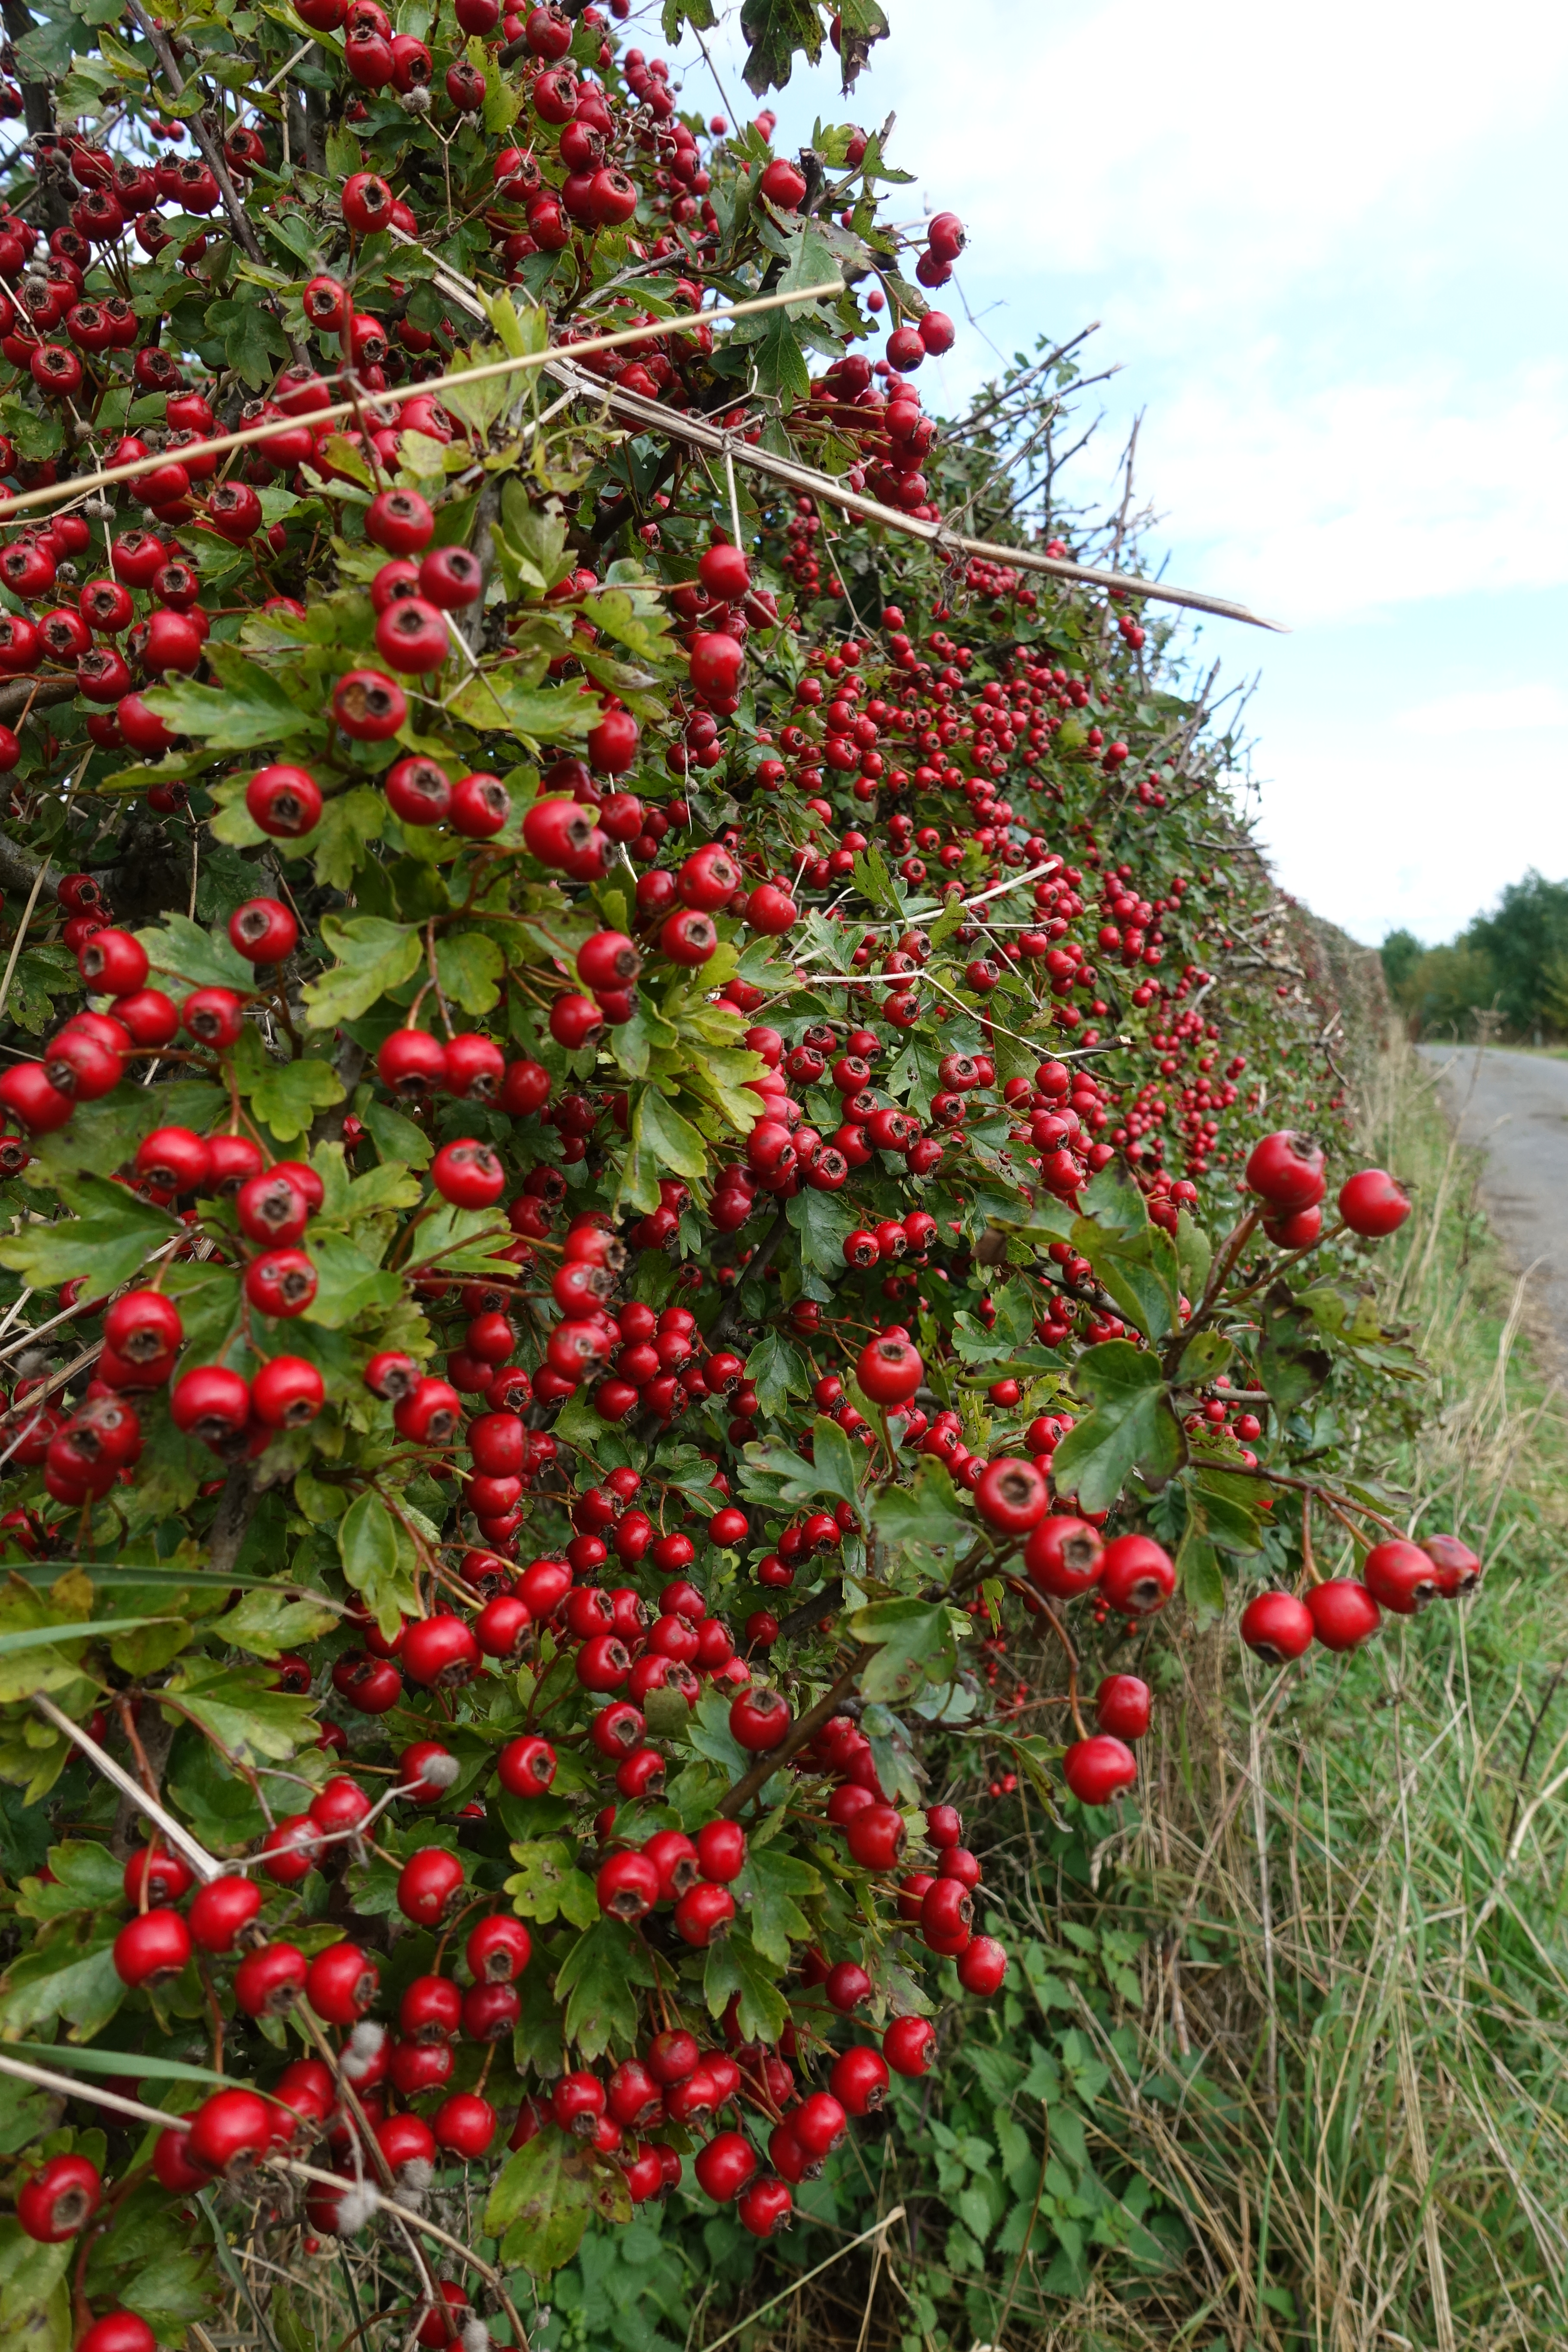 Berries in profusion on this autumn walk